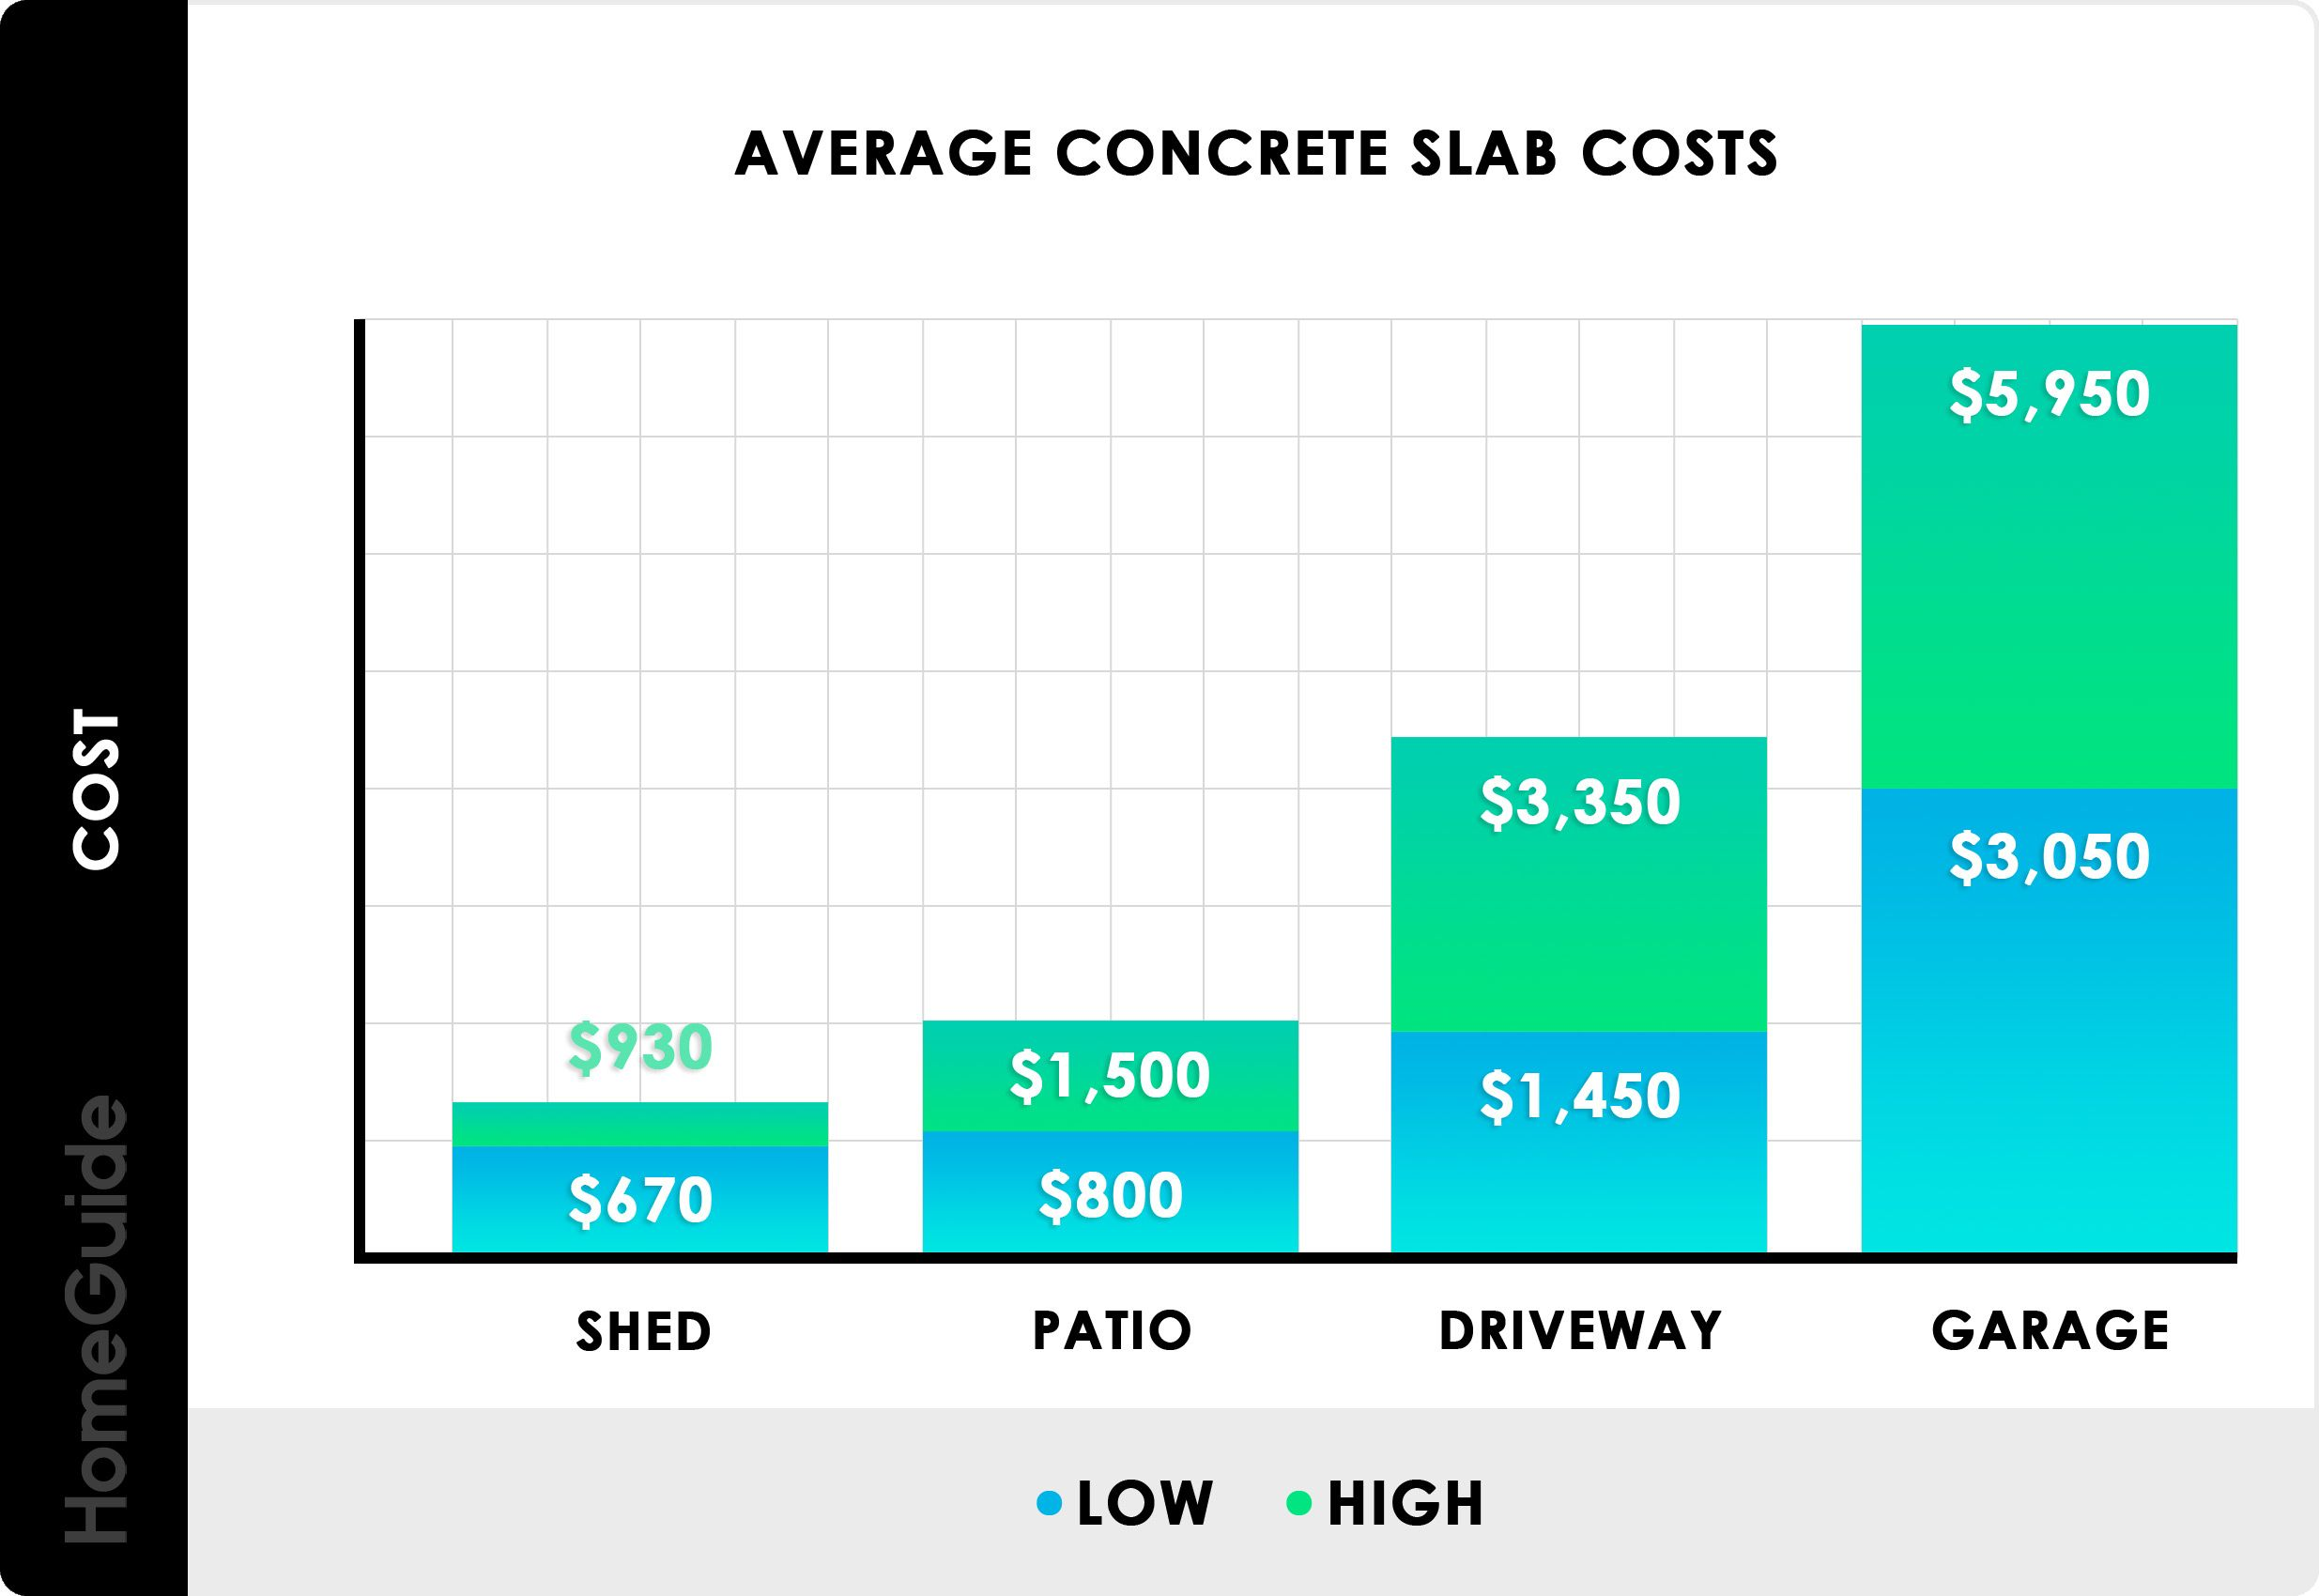 Concrete Slab Cost For Shed Patio Driveway And Garage Chart Cost To Pour Concrete Photography Pricing Concrete Slab